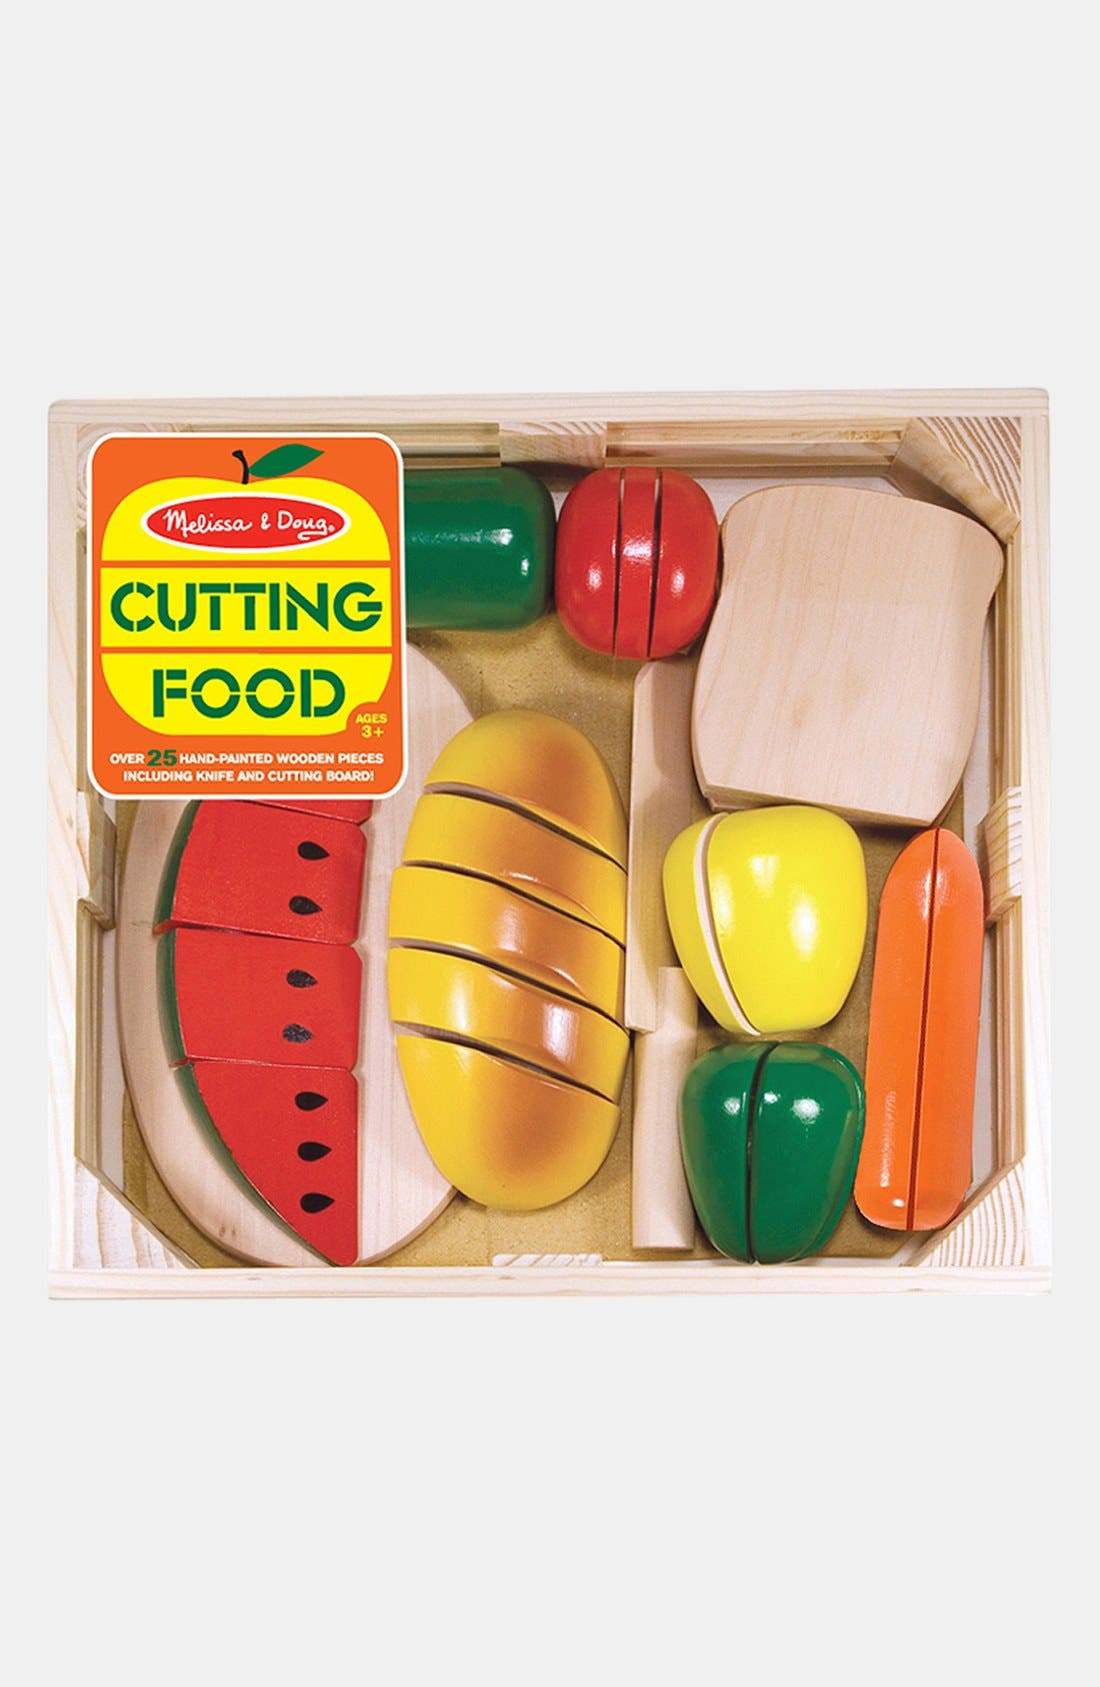 Image of Melissa & Doug Cutting Food Crate